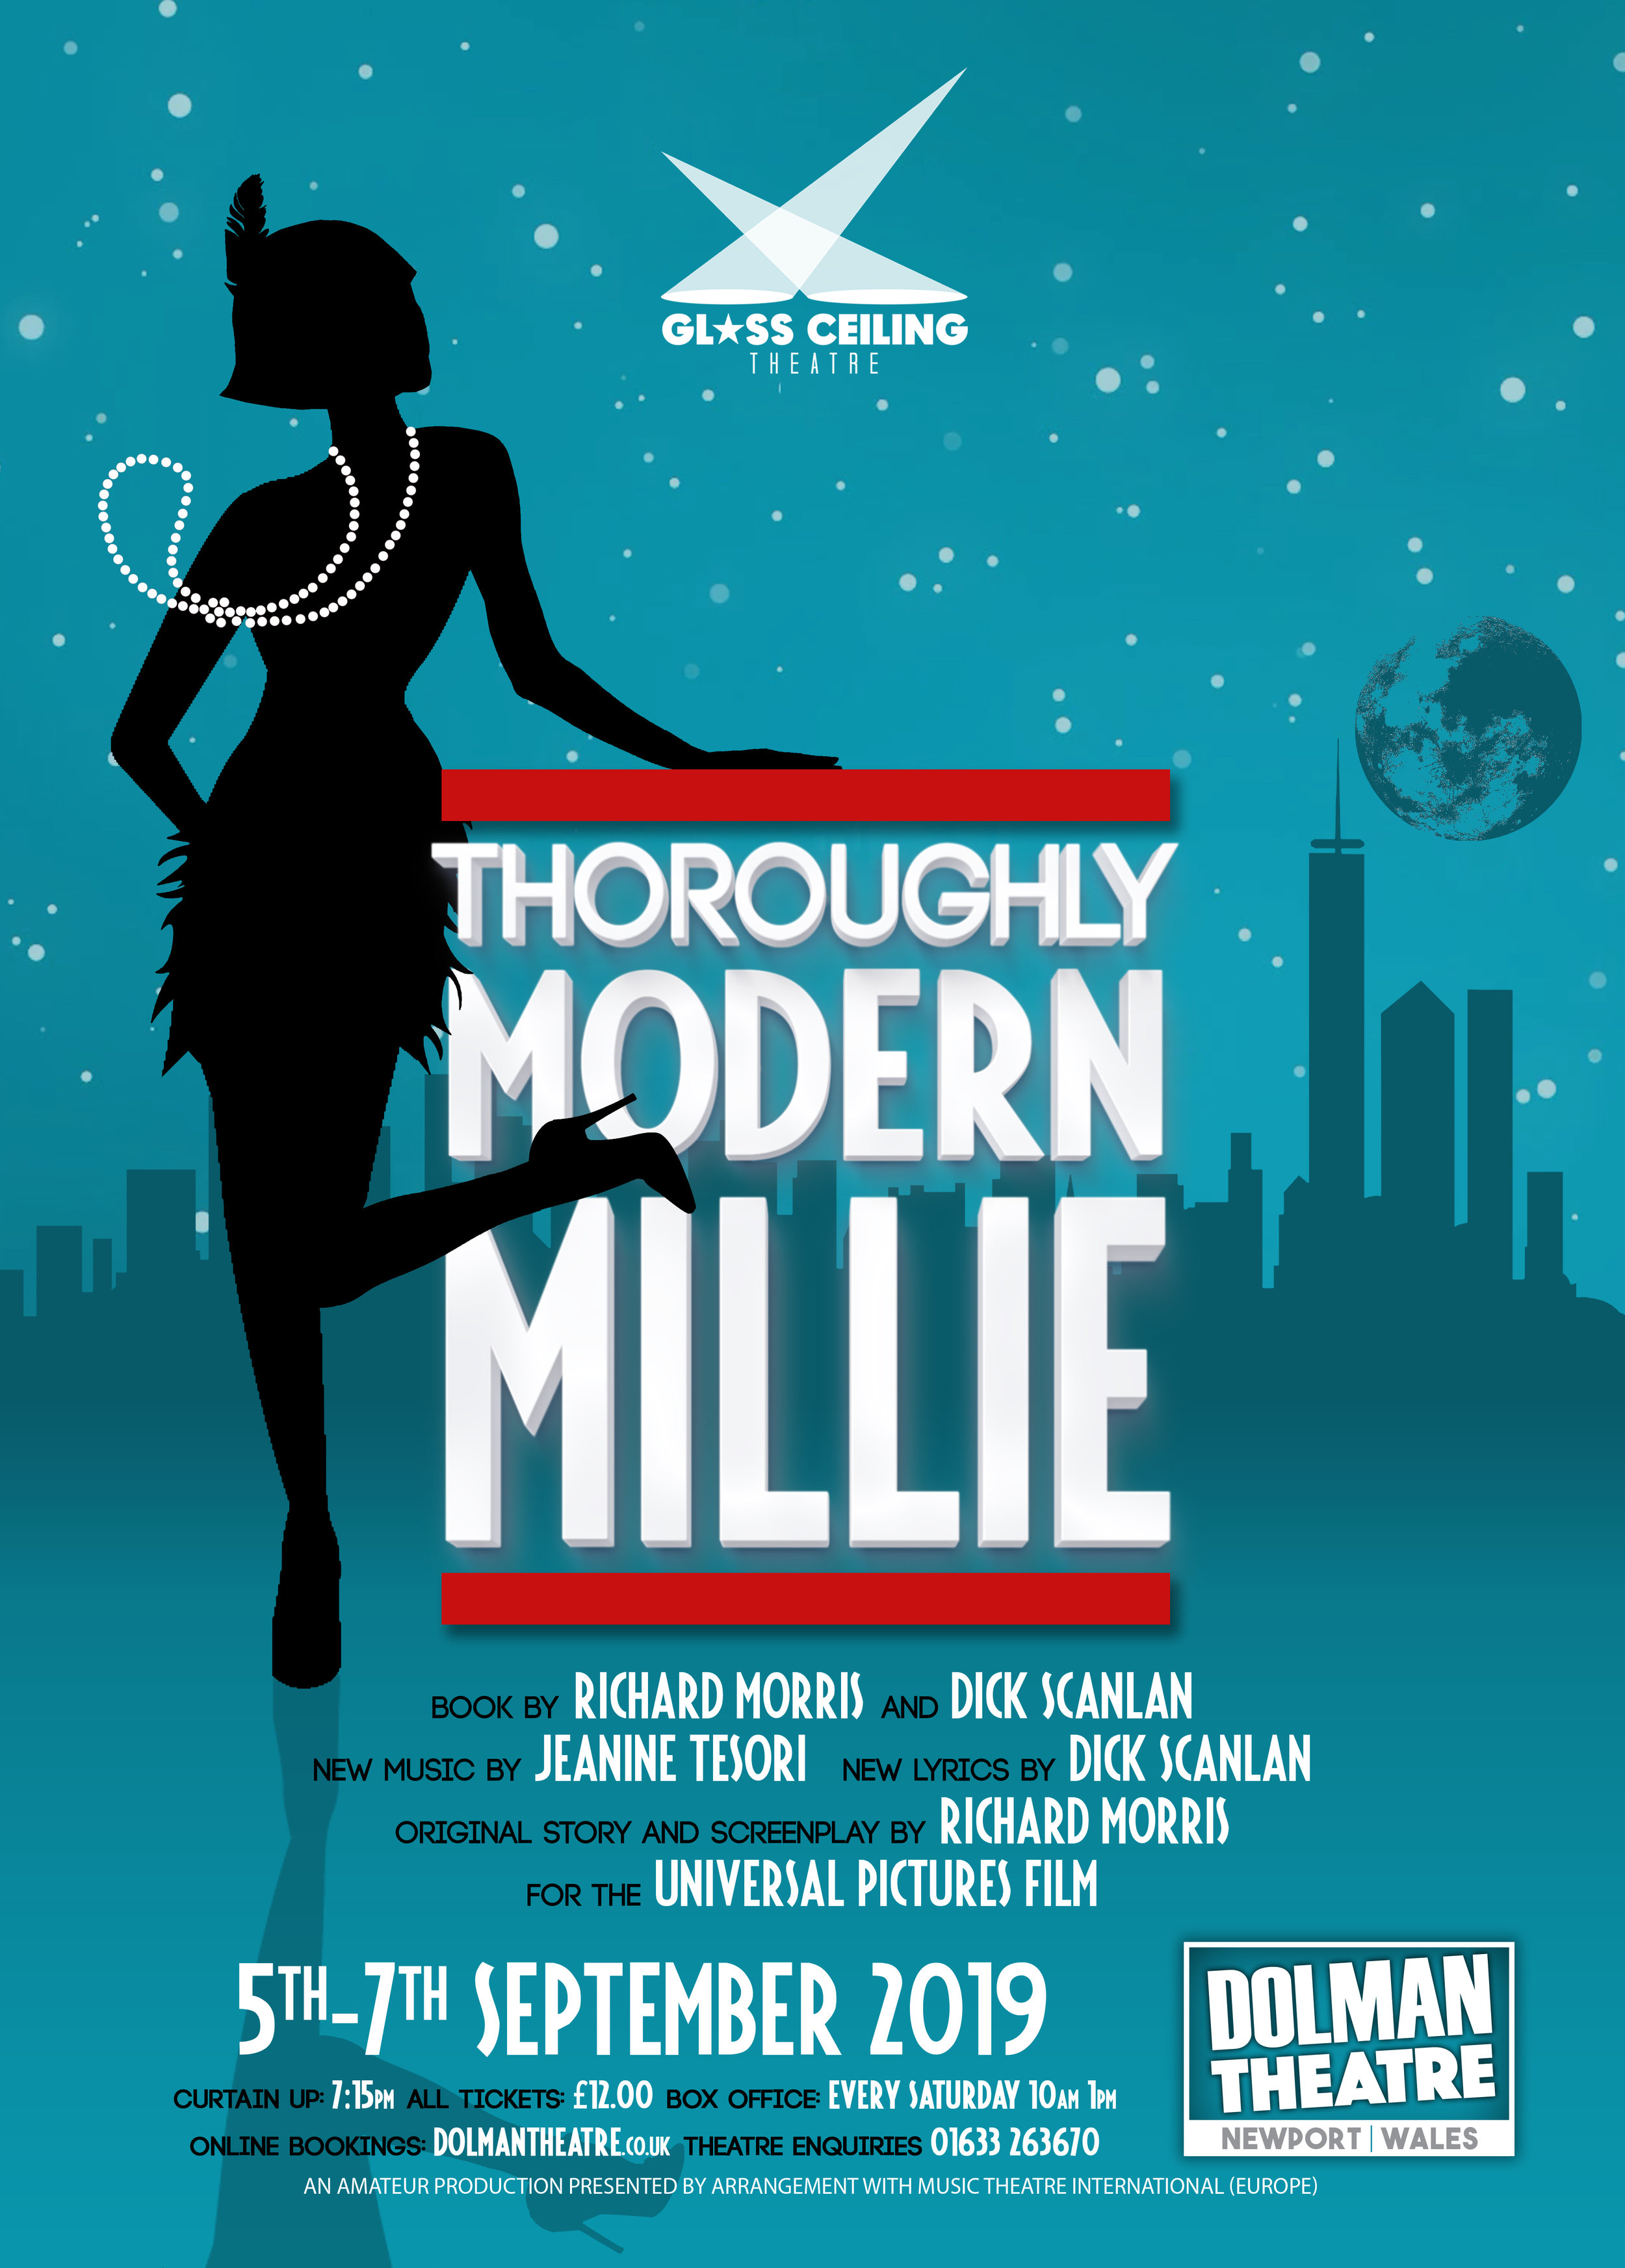 Glass Ceiling Theatre present Thoroughly Modern Millie at Newport's Dolman Theatre from September 5-7, 2019.